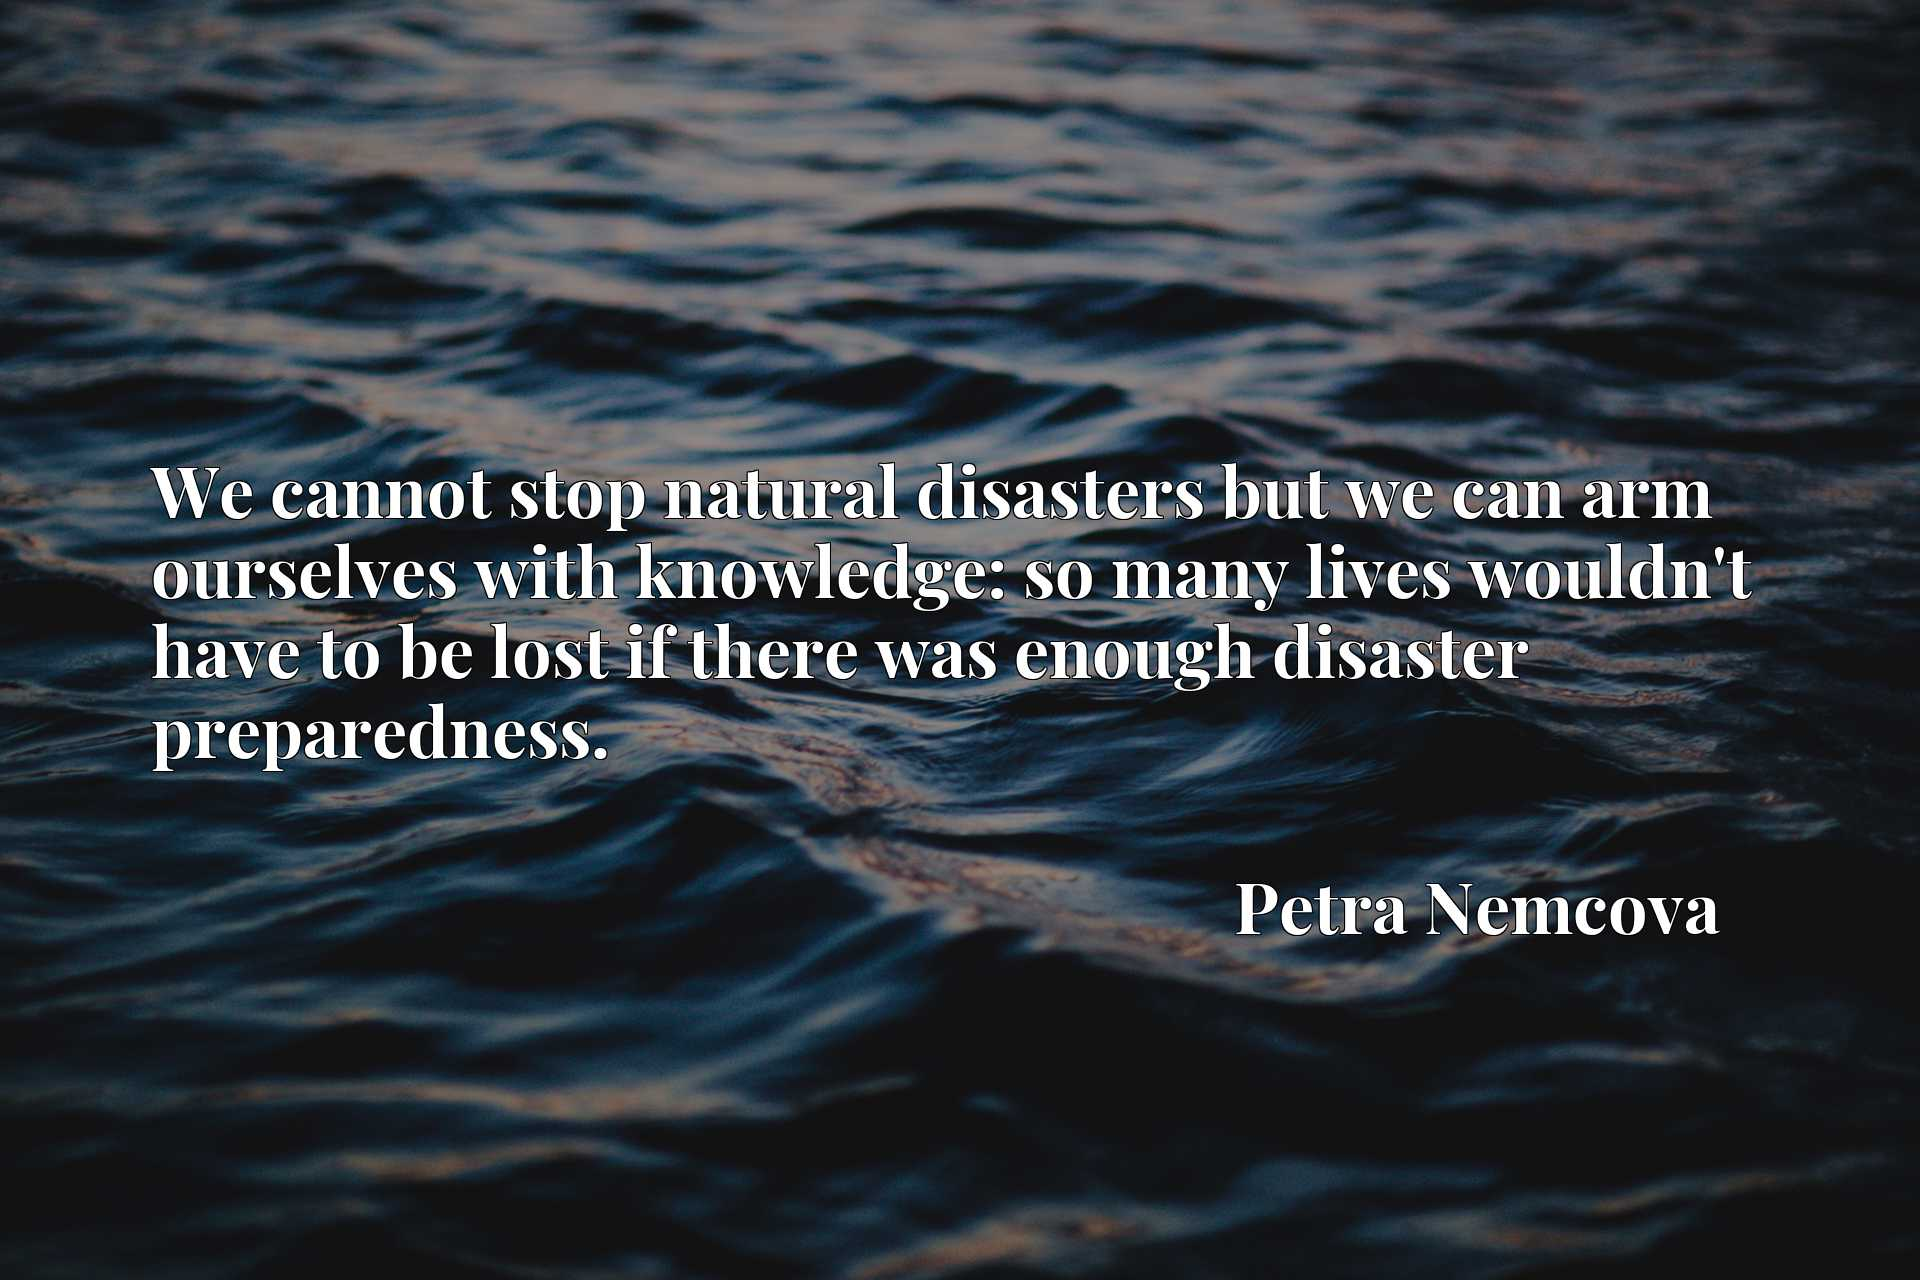 Quote Picture :We cannot stop natural disasters but we can arm ourselves with knowledge: so many lives wouldn't have to be lost if there was enough disaster preparedness.